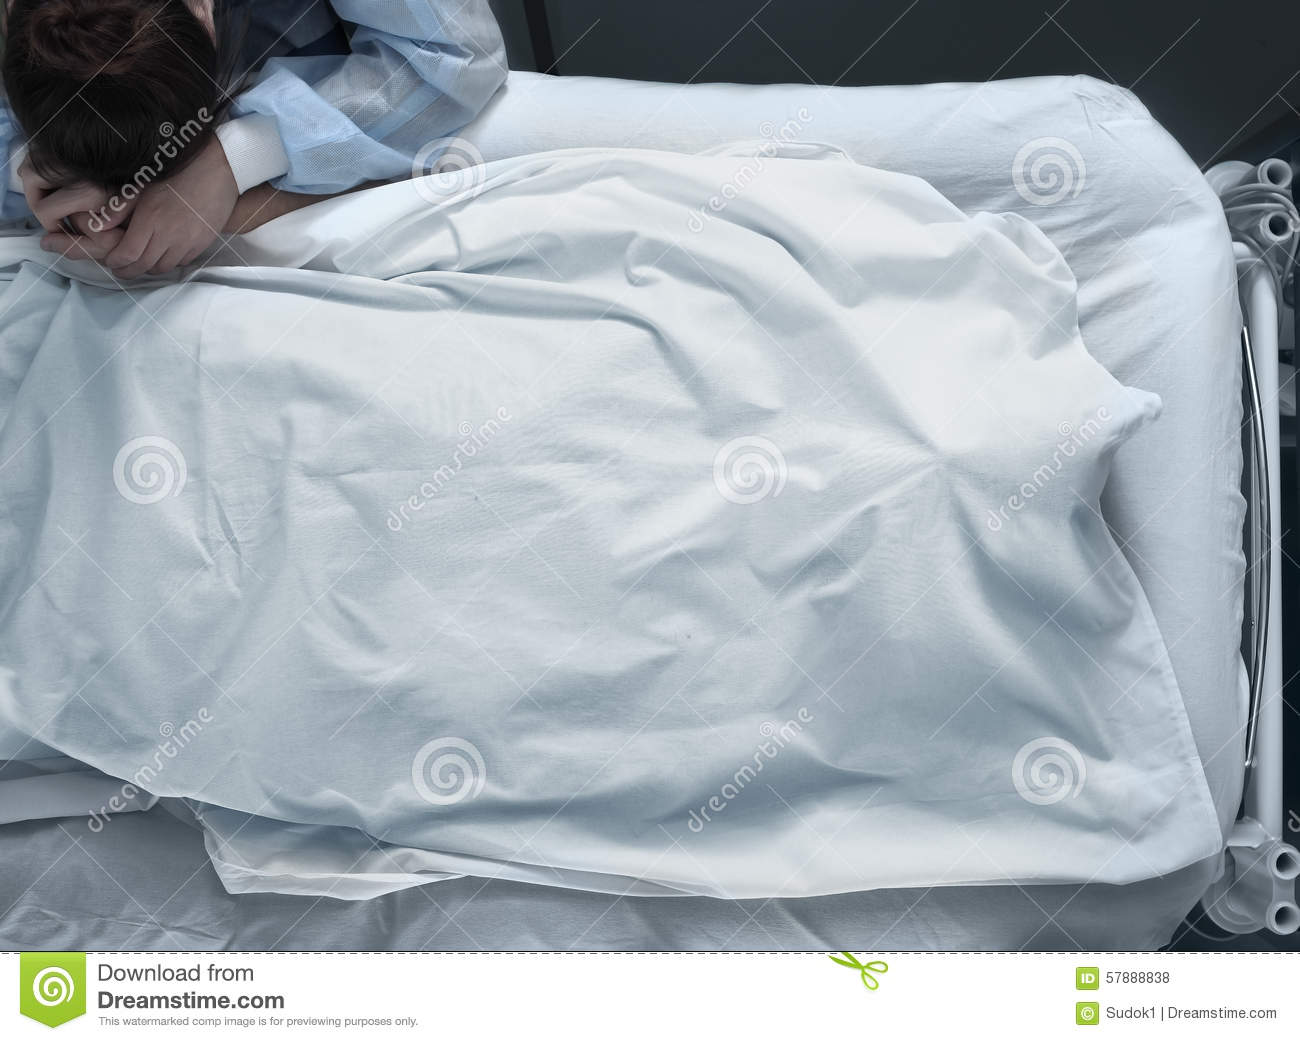 Corpse In A Hospital Bed Covered With A Head And Suffering -5949